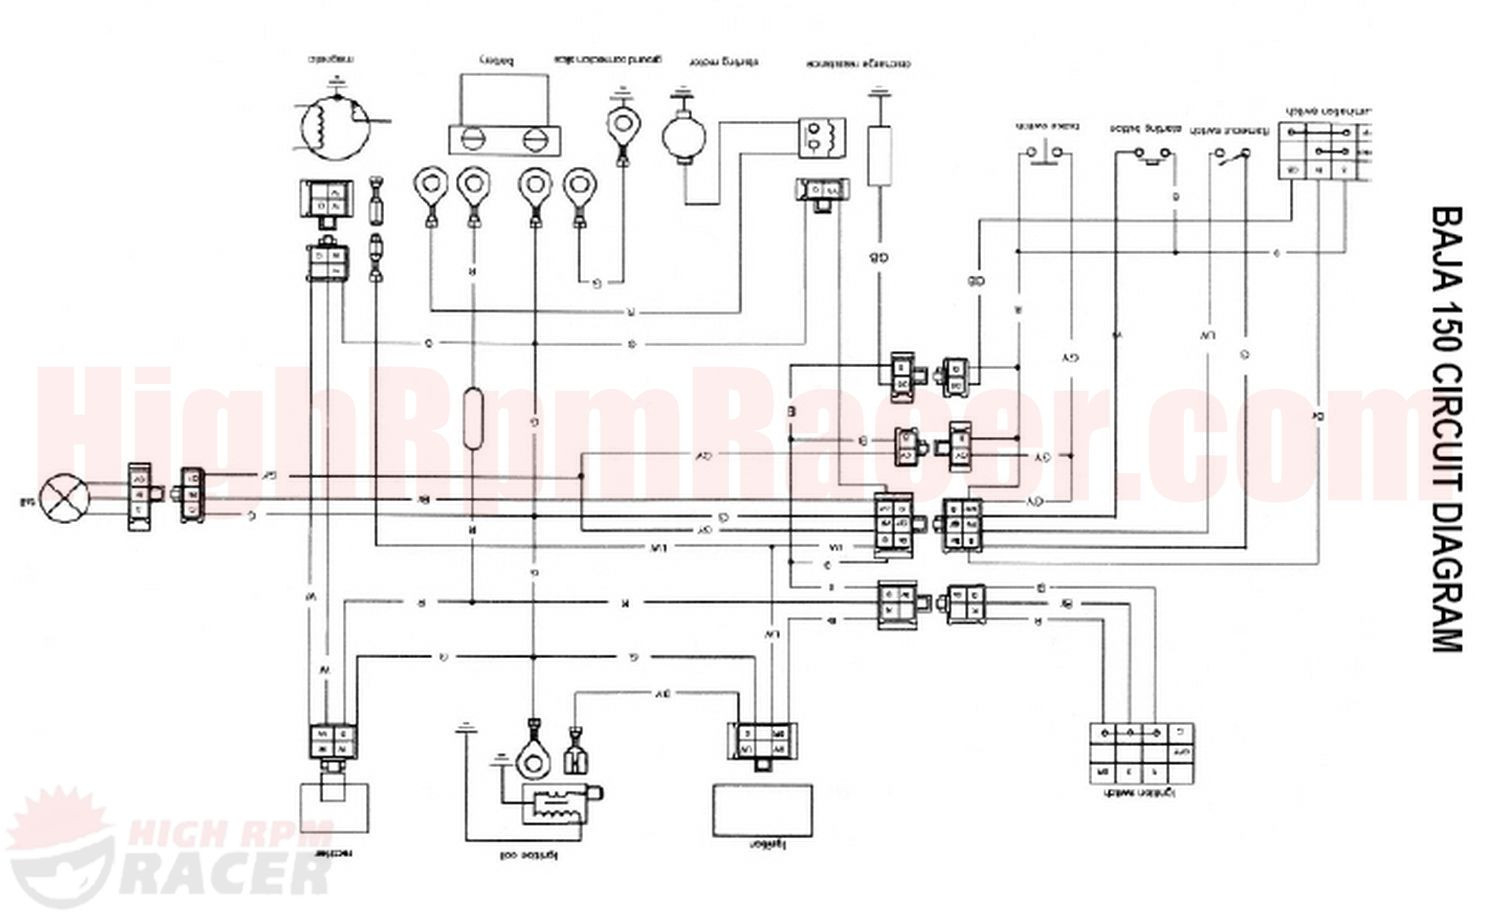 hight resolution of coolster 125cc atv wiring diagram collection coolster mountopz 110cc atv wiring diagram coolster 125cc atv wiring